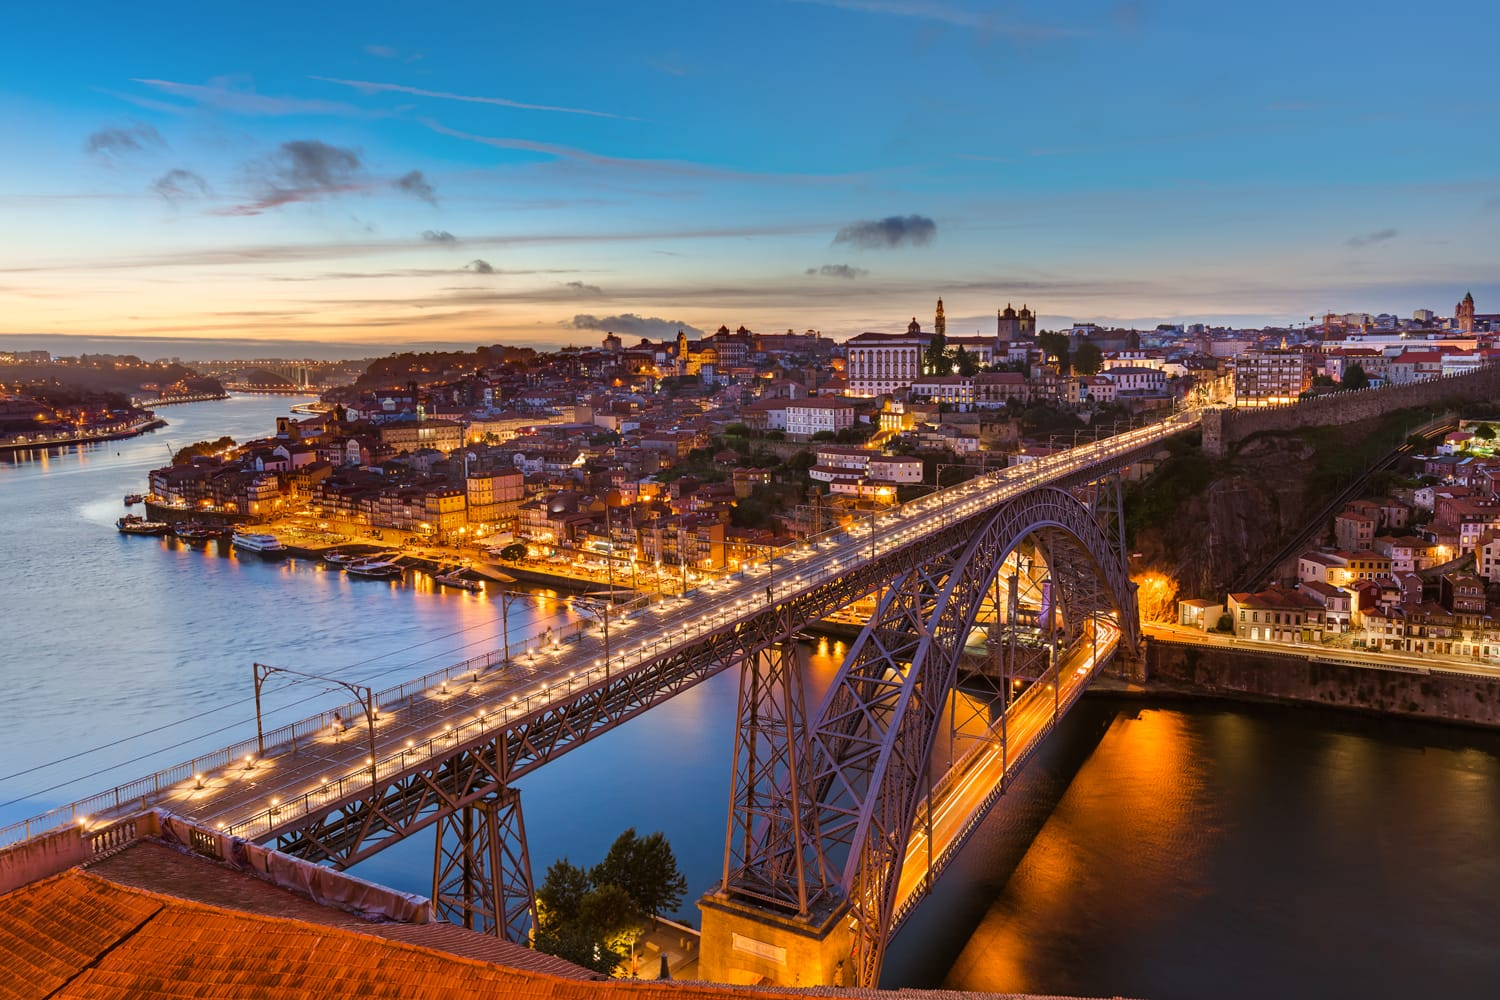 Sunset view over Porto, Portugal